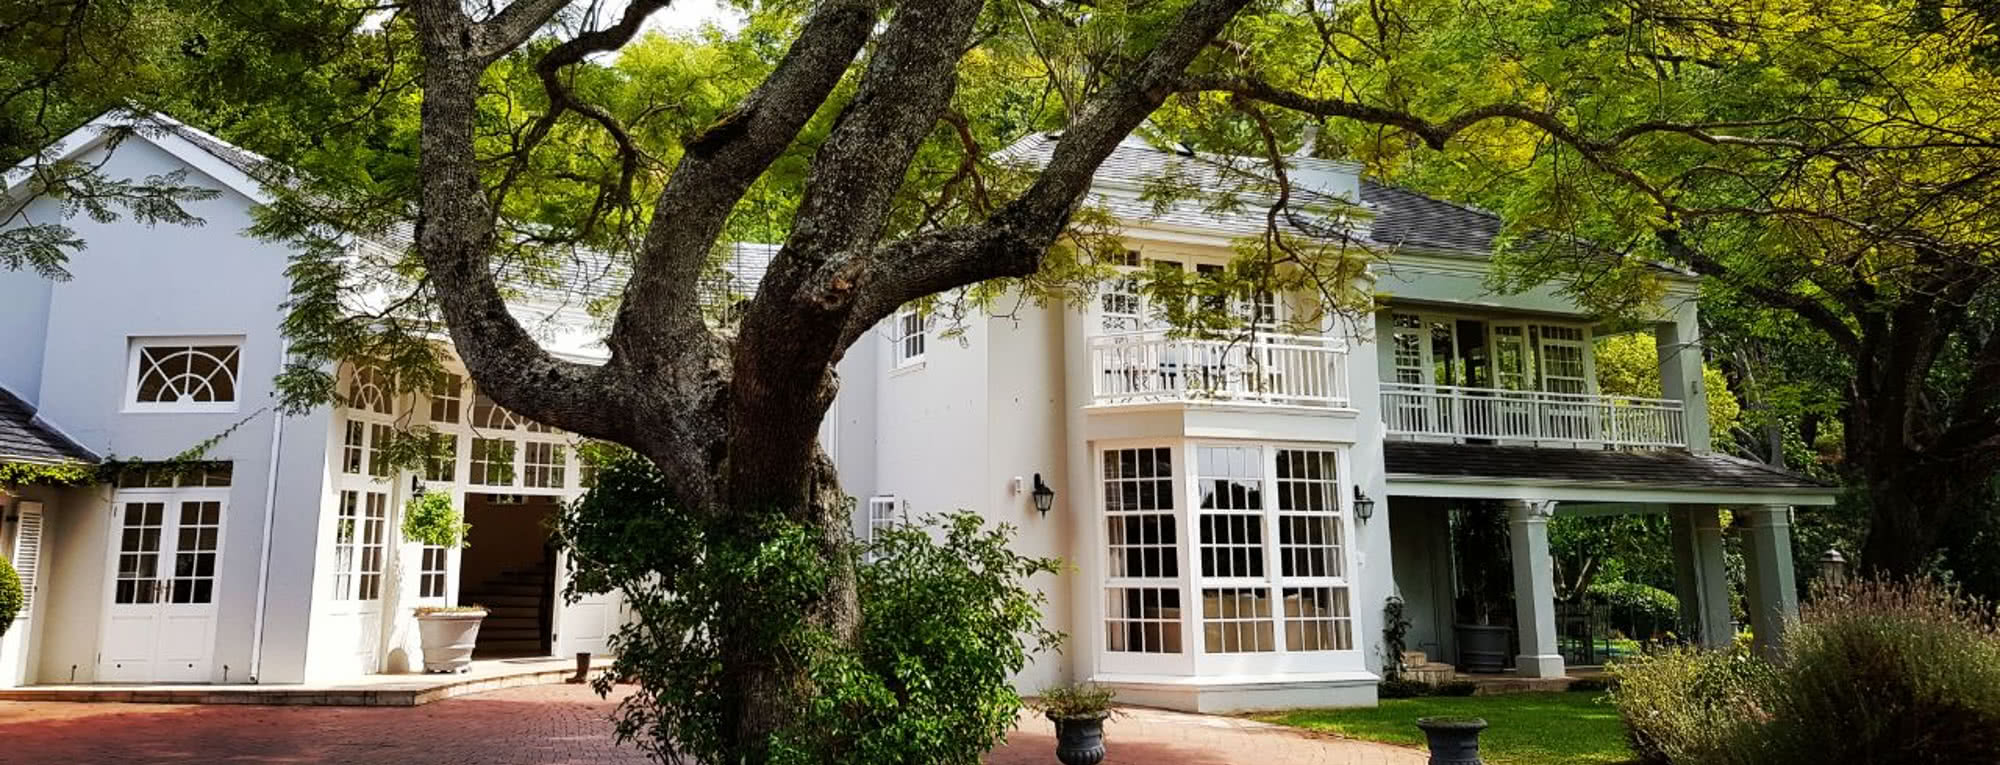 Drug Rehab and Alcohol Detox Center in Cape Town, South Africa - Main Building with Tree in Front